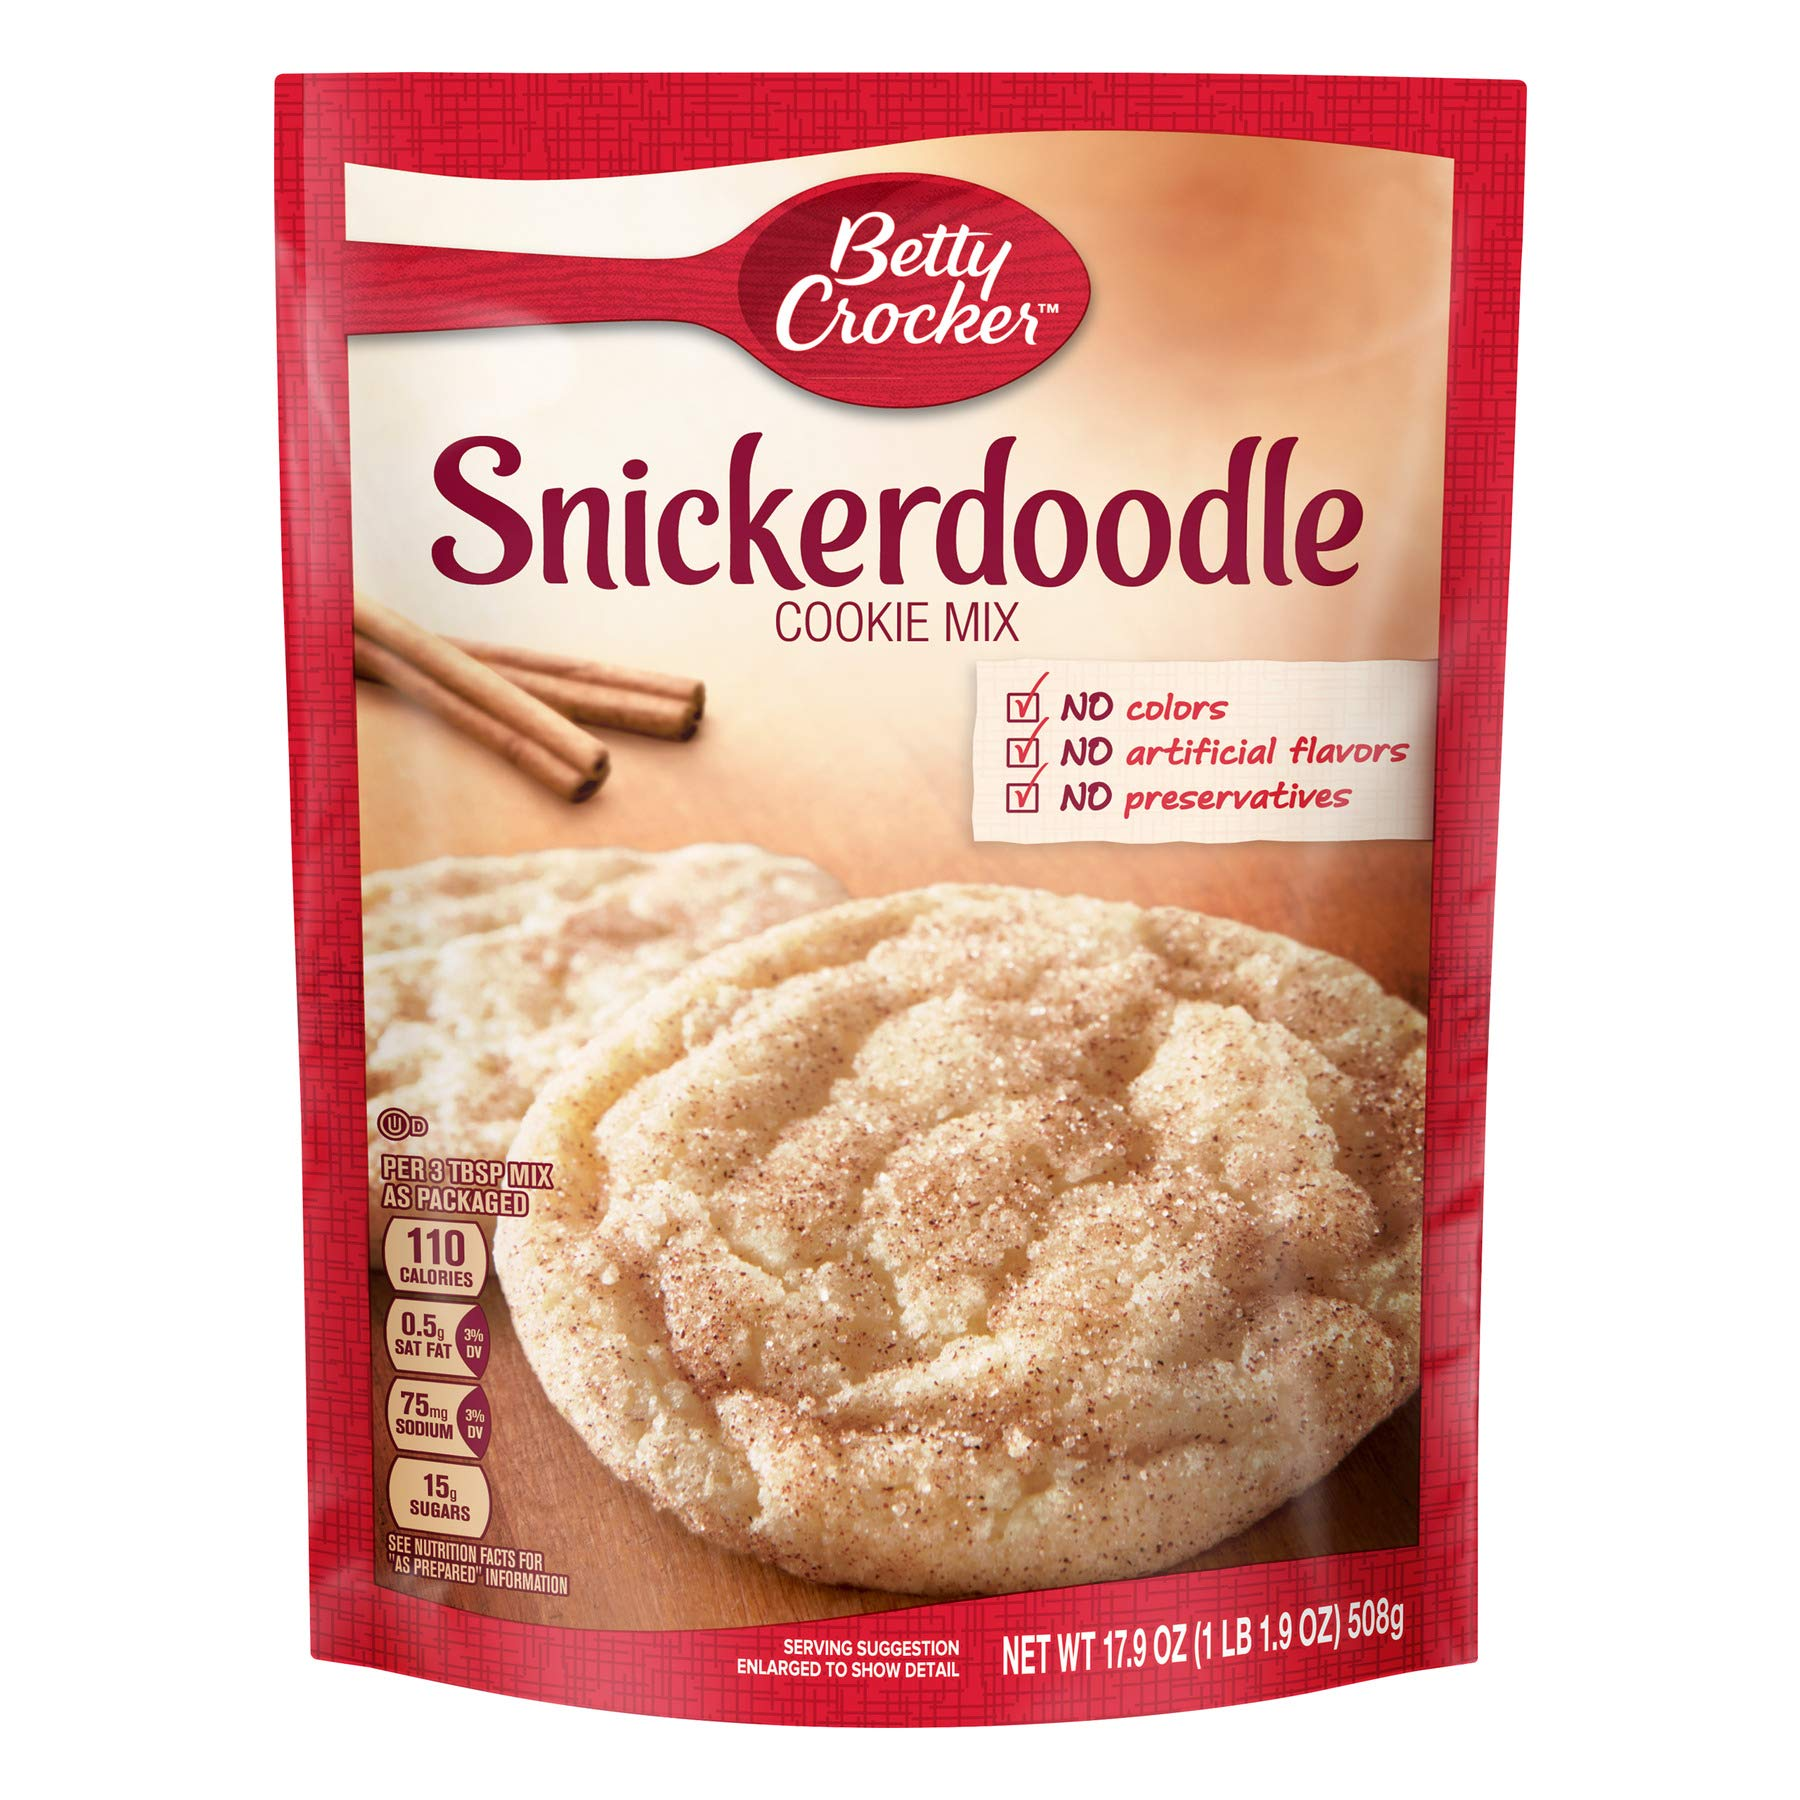 Betty Crocker Snickerdoodle Cookie Mix 17.9 Oz (Pack of 2) by Betty